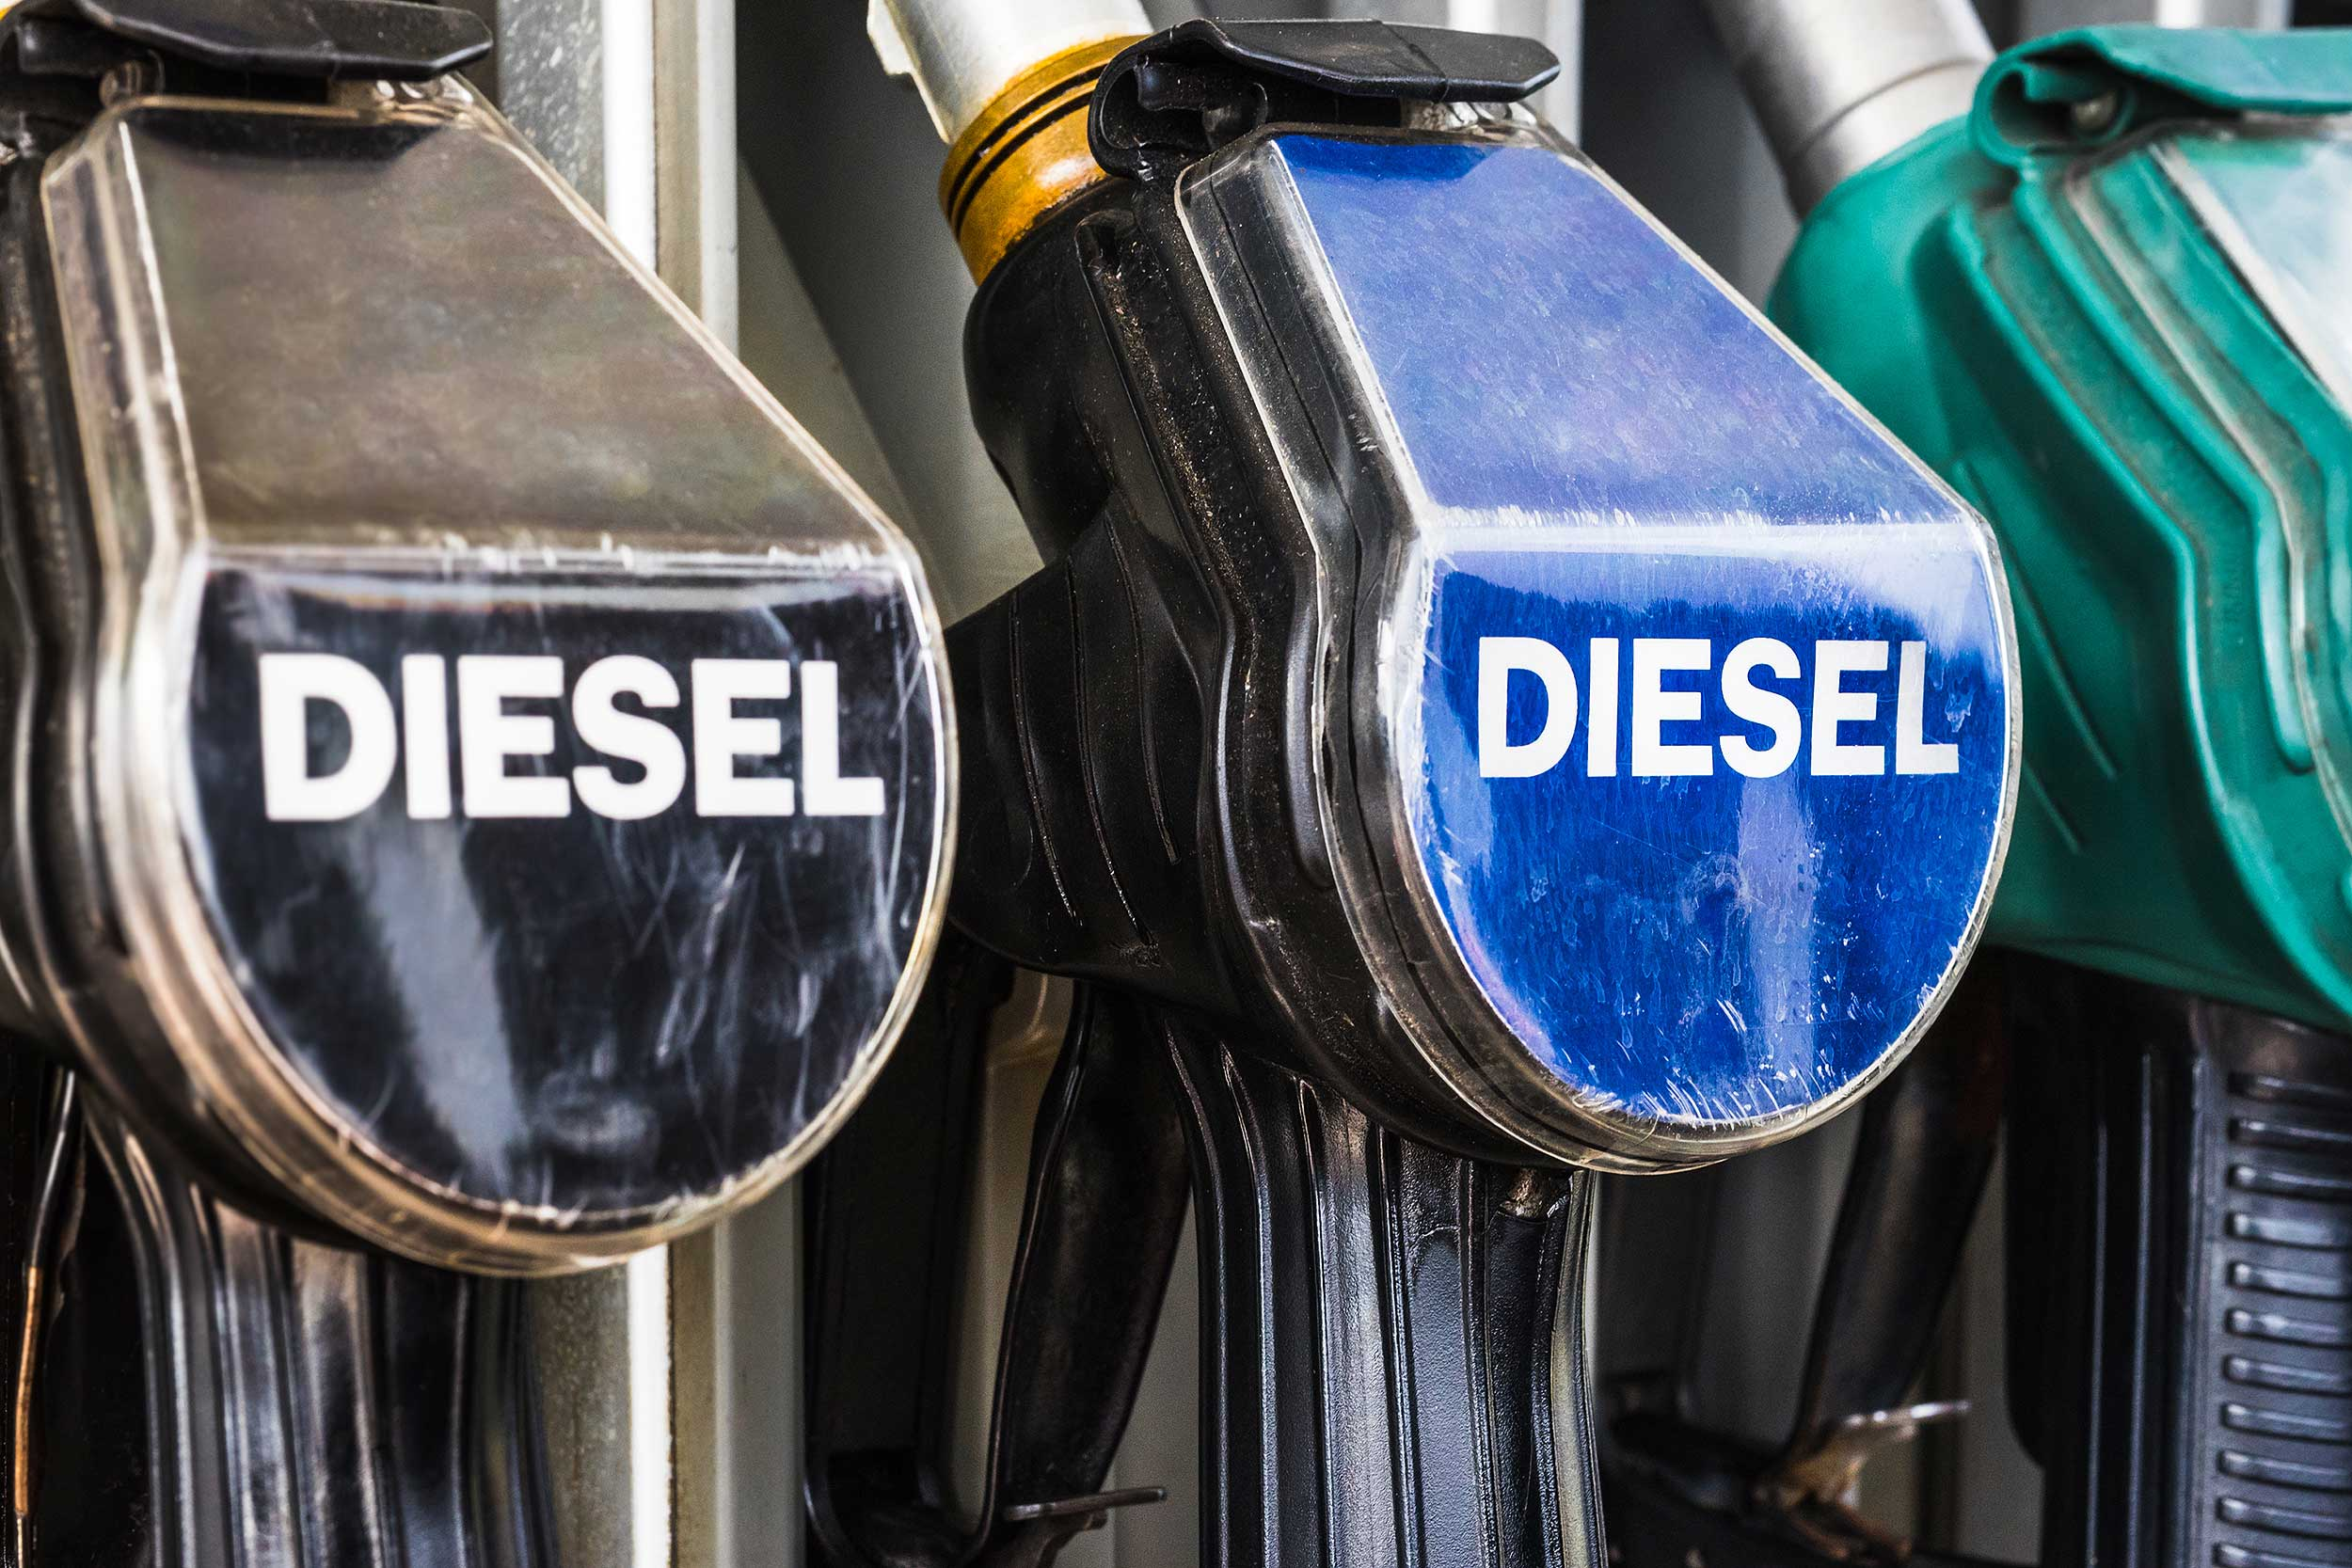 Diesel pumps at the filling station